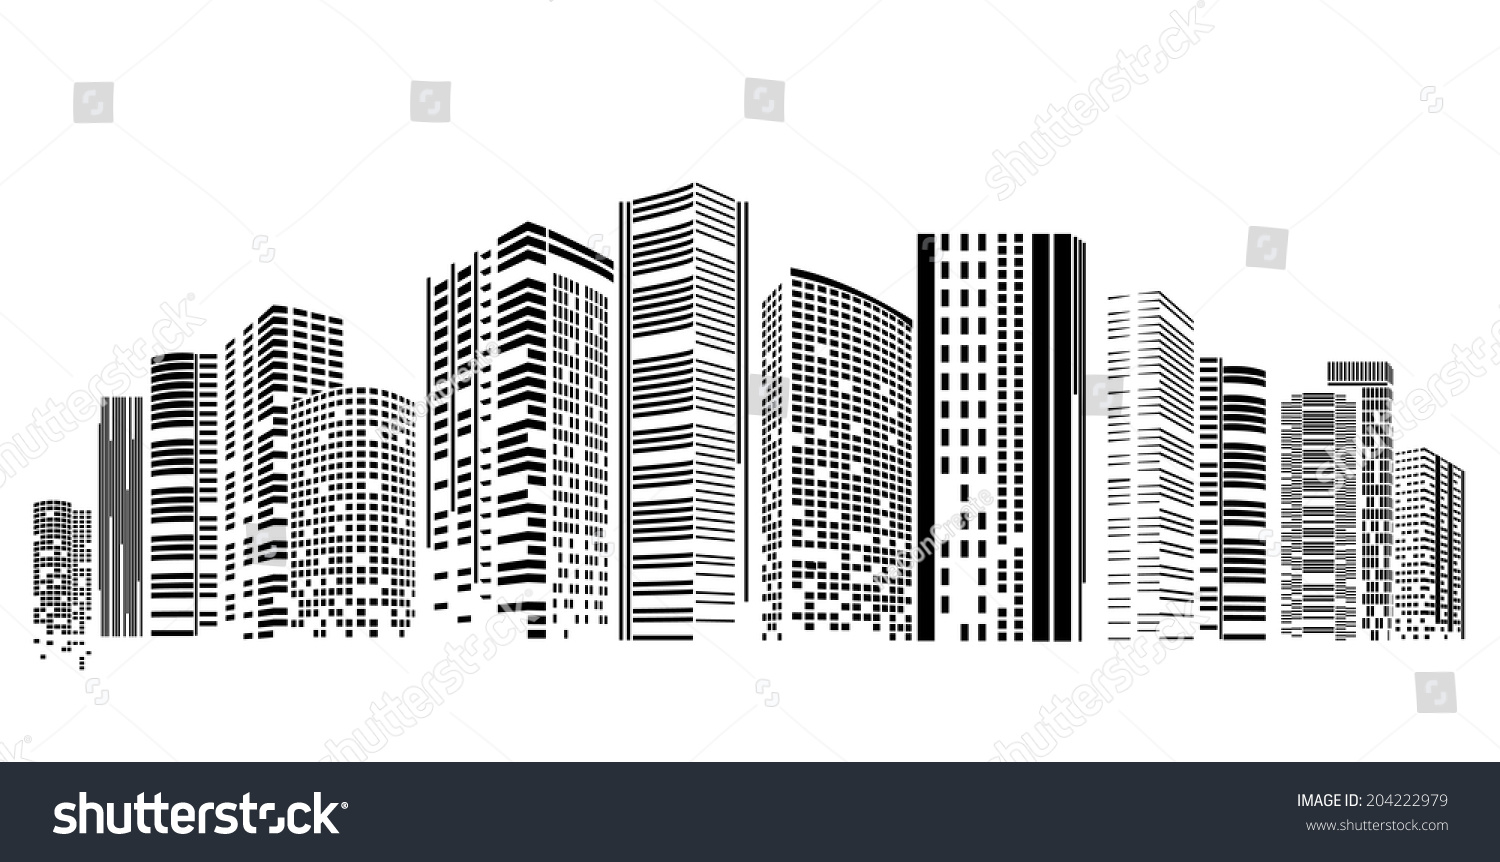 Vector design eps10 building city illustration stock for Building design images